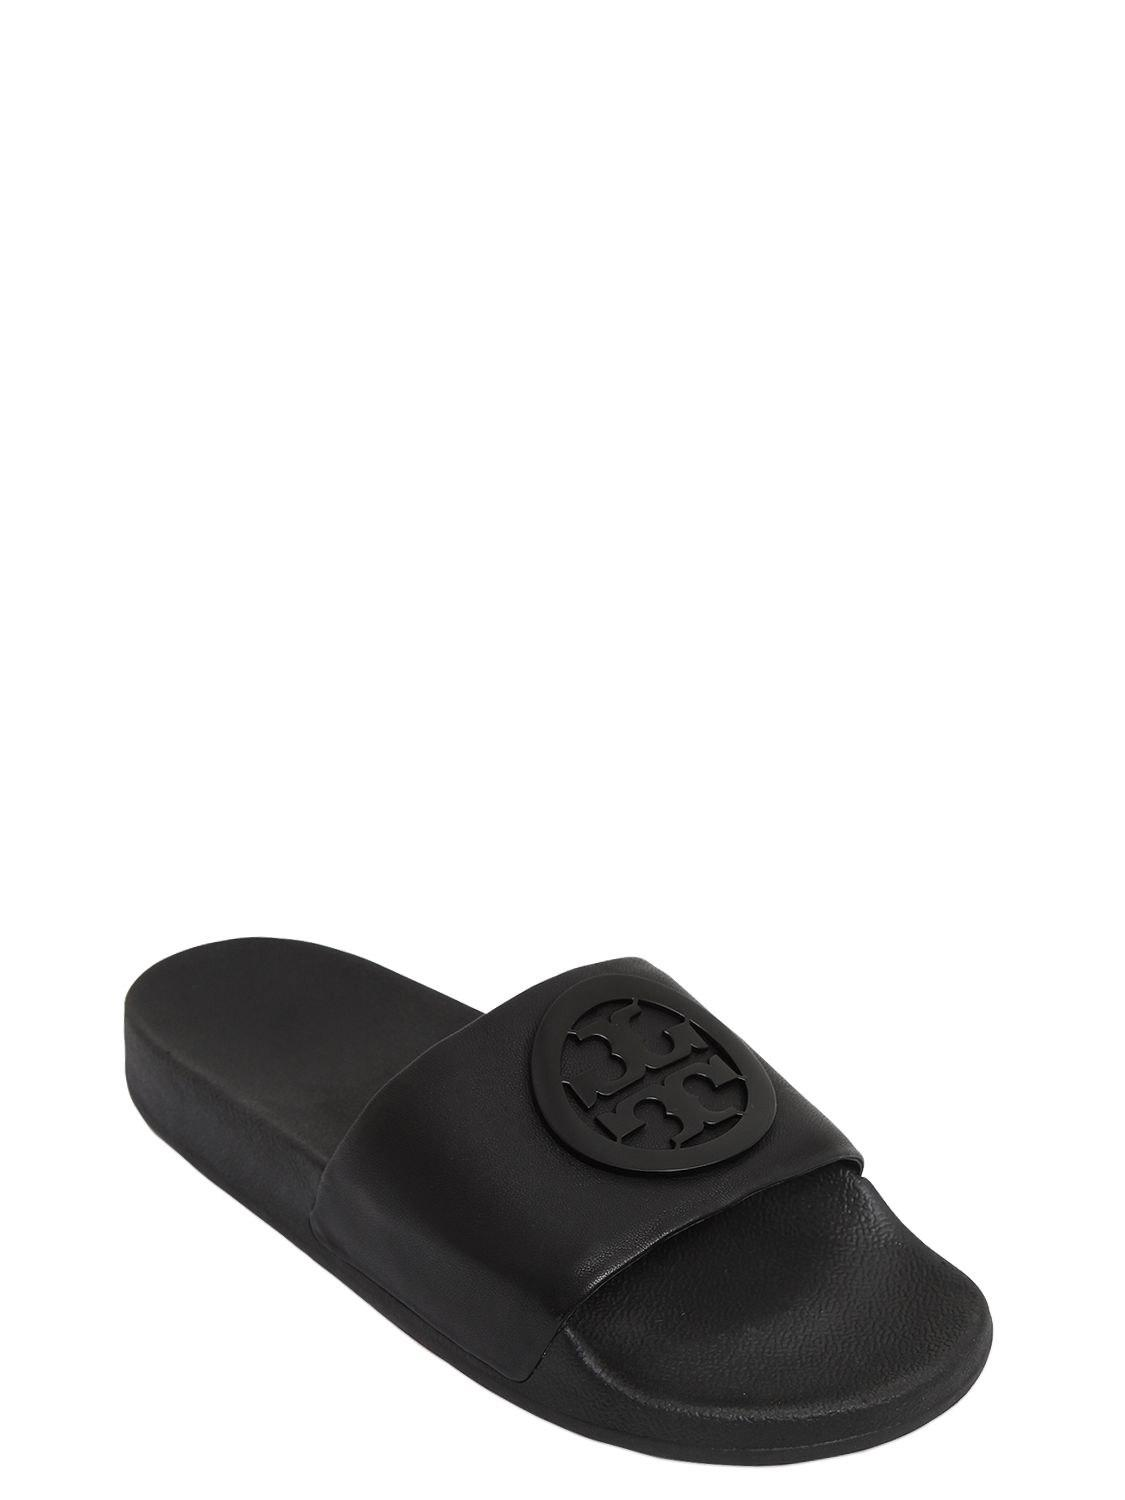 b21d764a3 Tory Burch Lina Slides in Black - Save 50% - Lyst